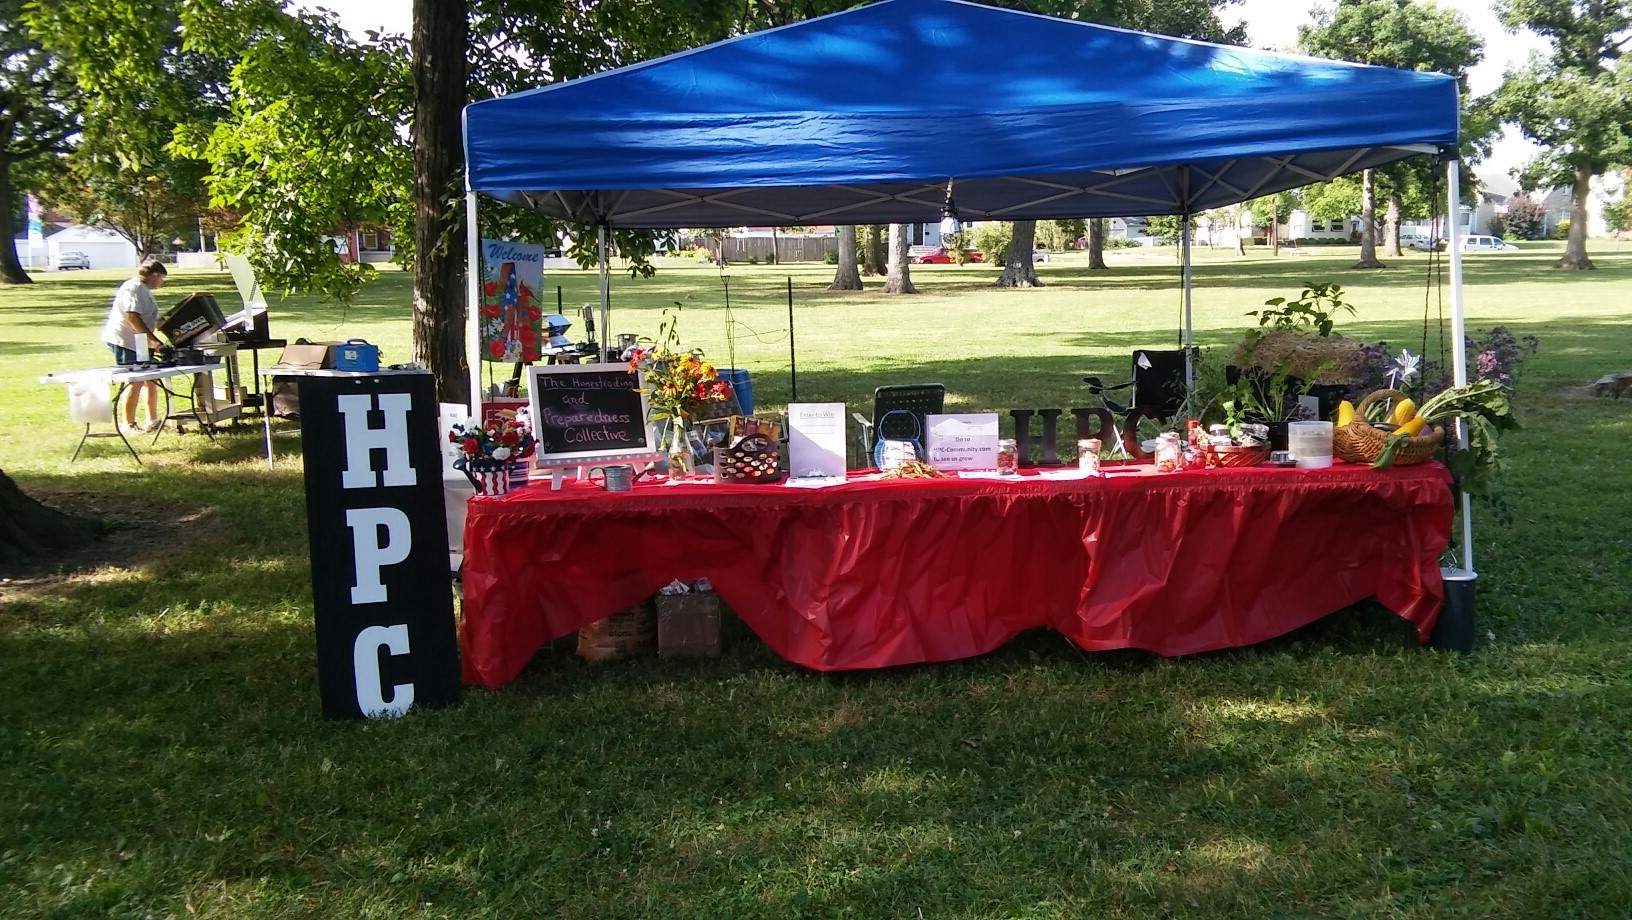 HPC - The Homesteading and Preparedness Booth at The Westgate Summer Jam 2016